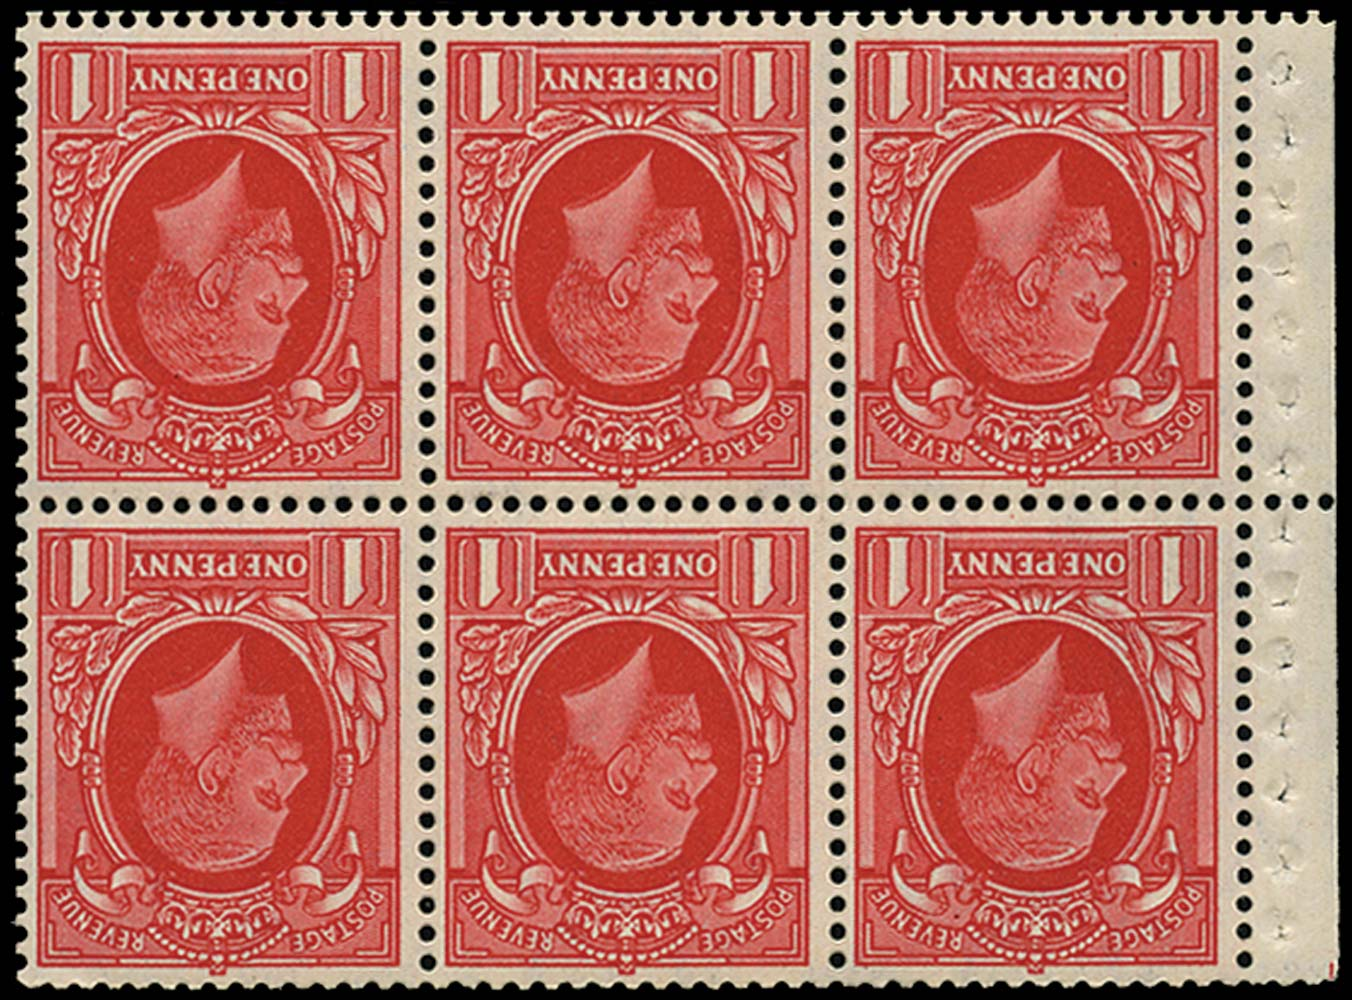 GB 1935  SG440gw Booklet pane (Small format) Wmk. Inverted